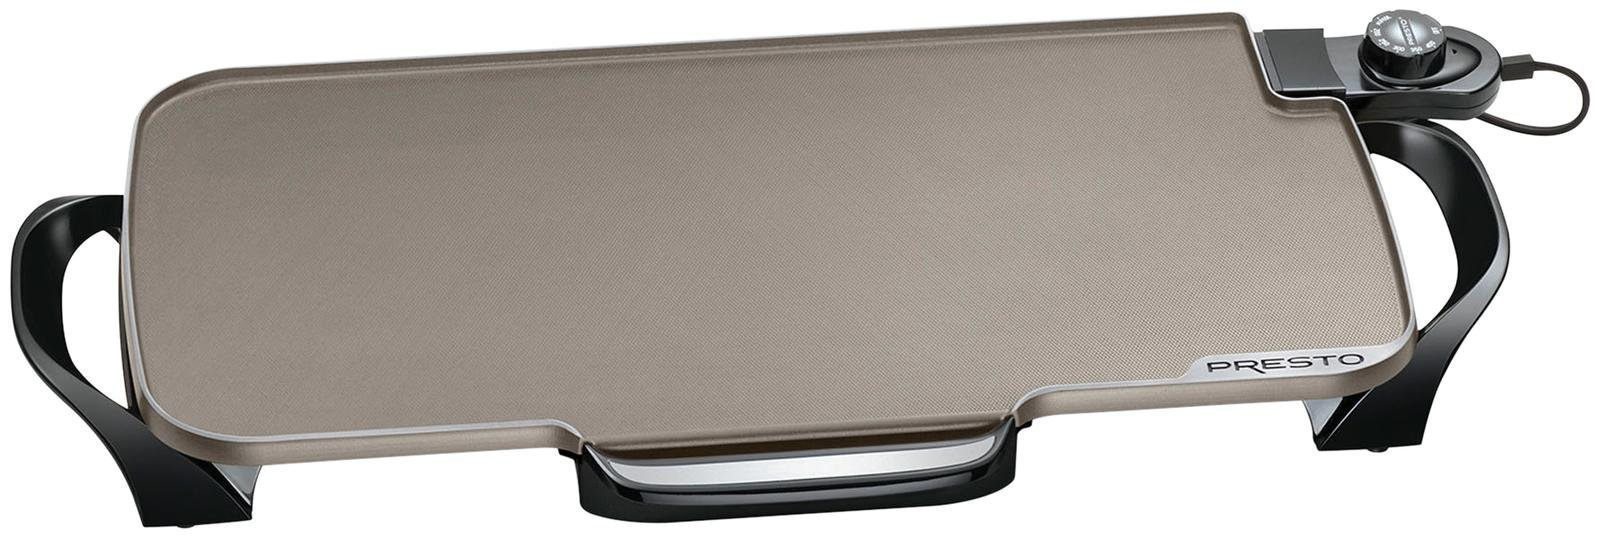 Presto 07062 Electric Griddle with removable handles, Black